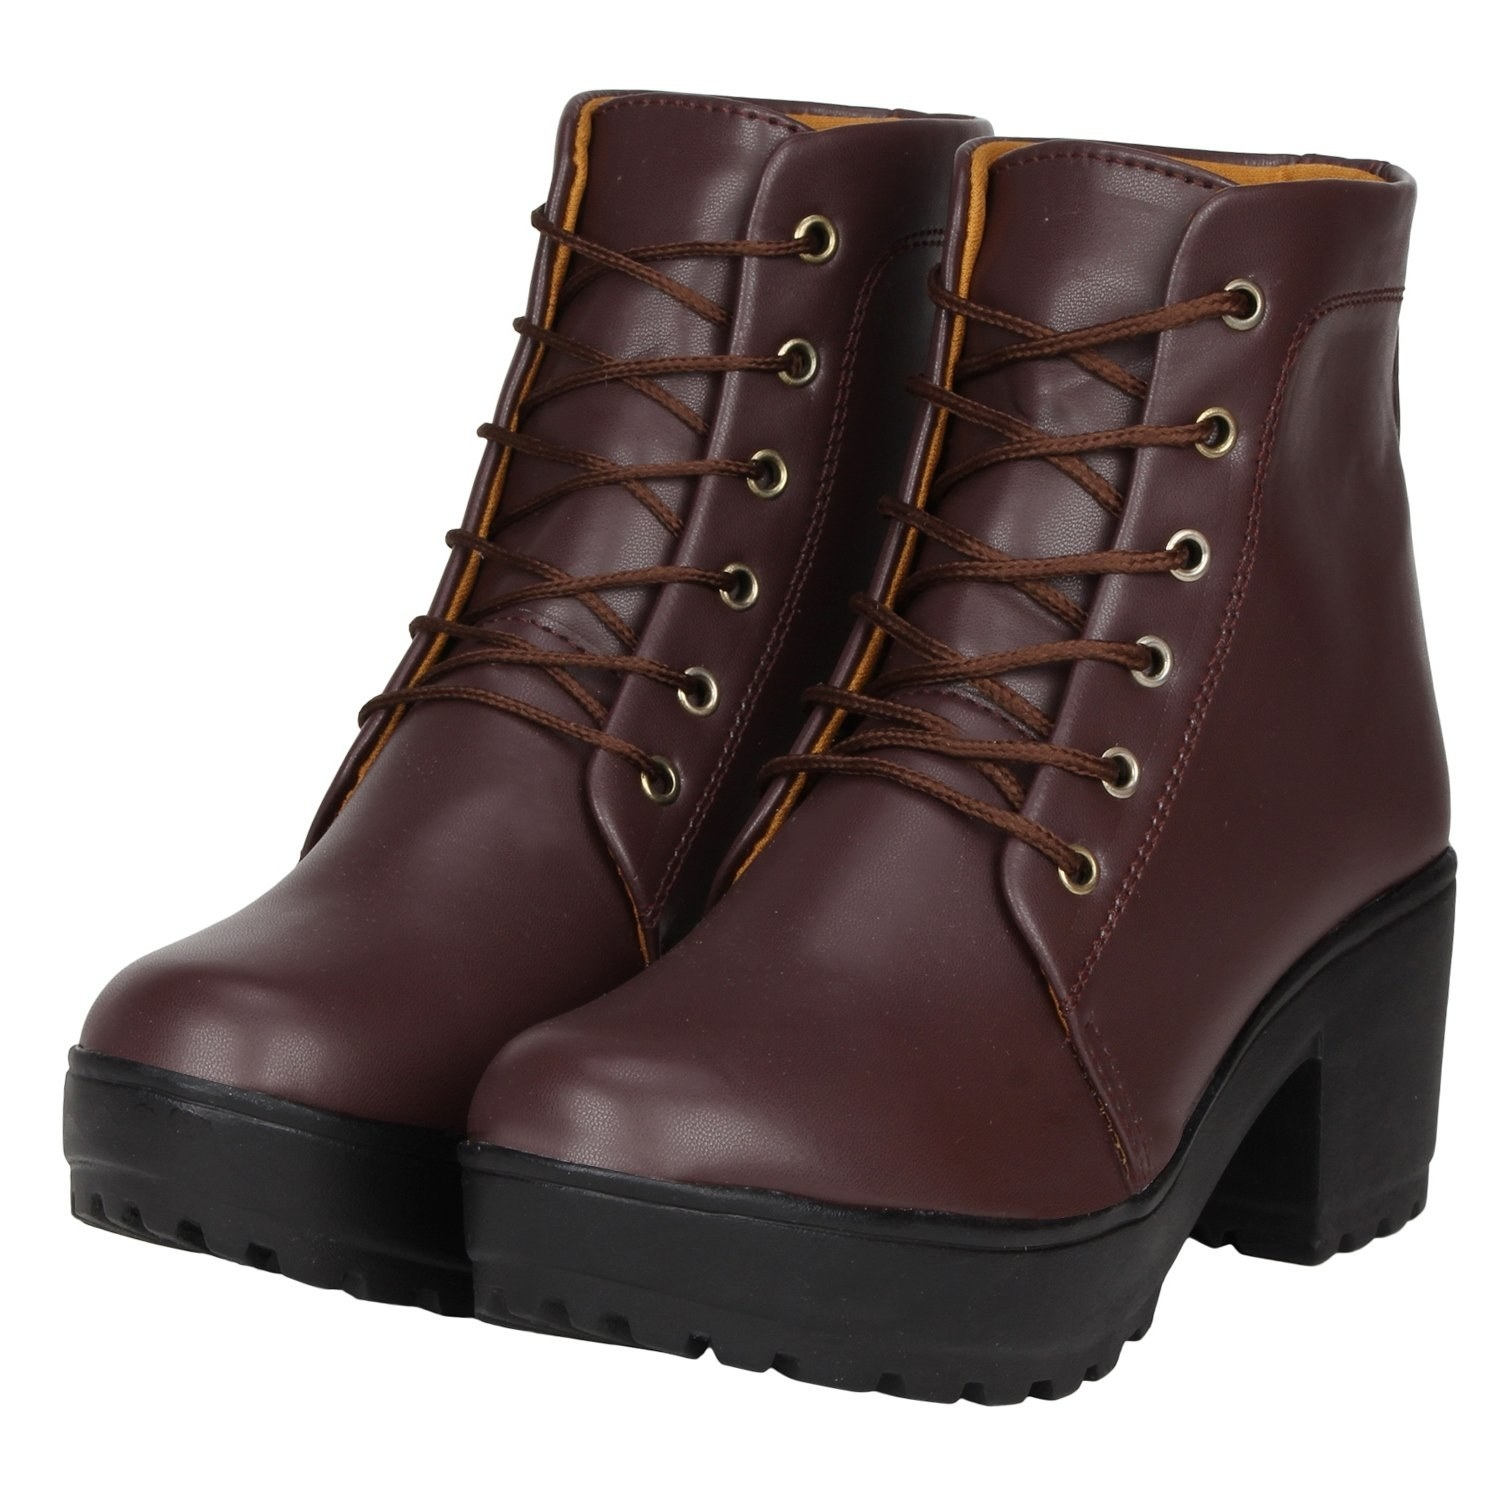 Chunky boots in brown